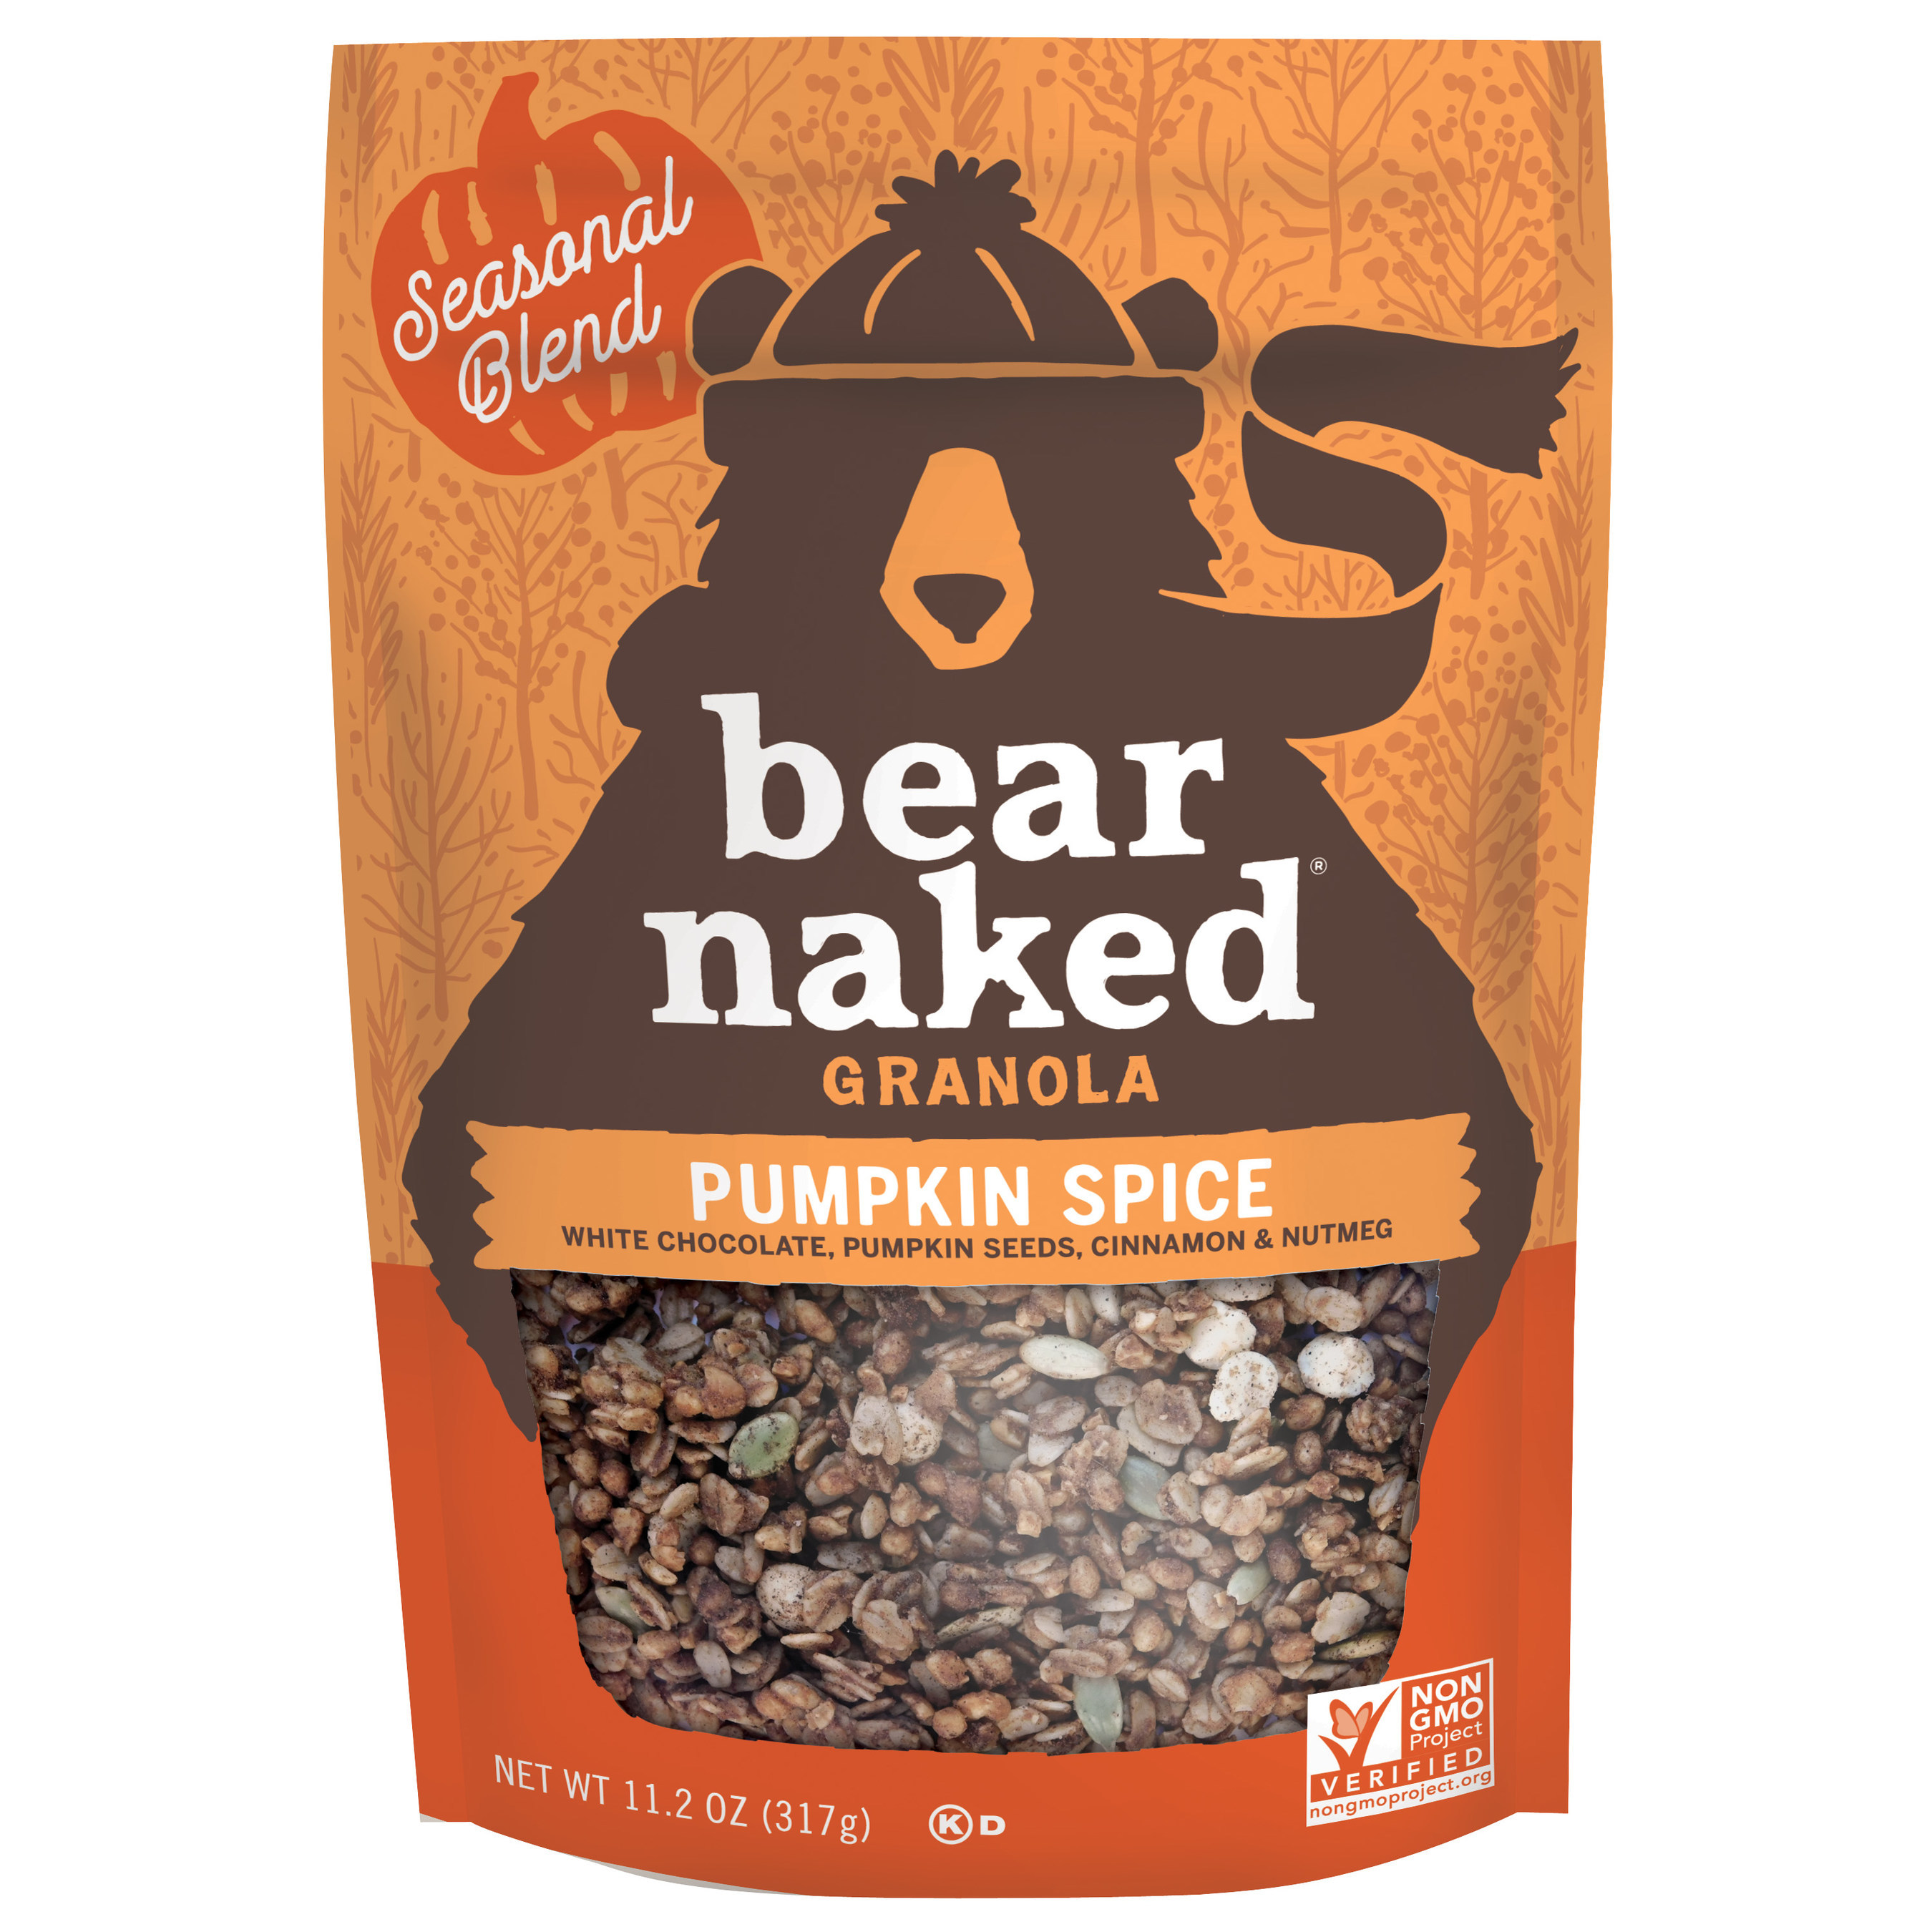 Bear Naked Launches Pumpkin Spice and Pecan Pie Granola